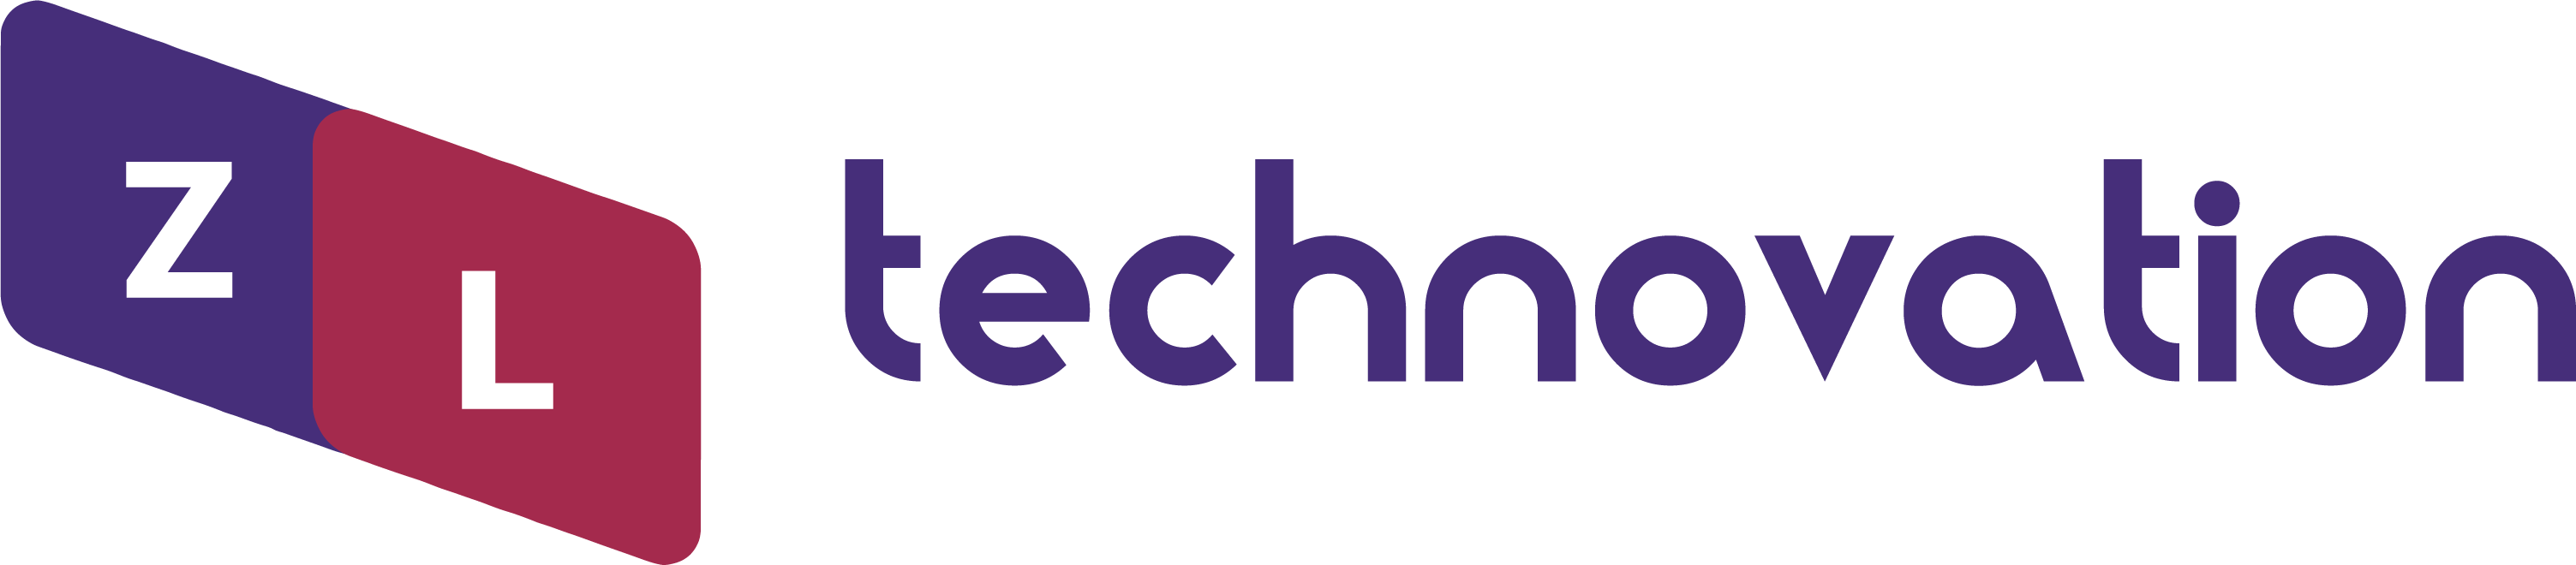 ZL Technovation Logo